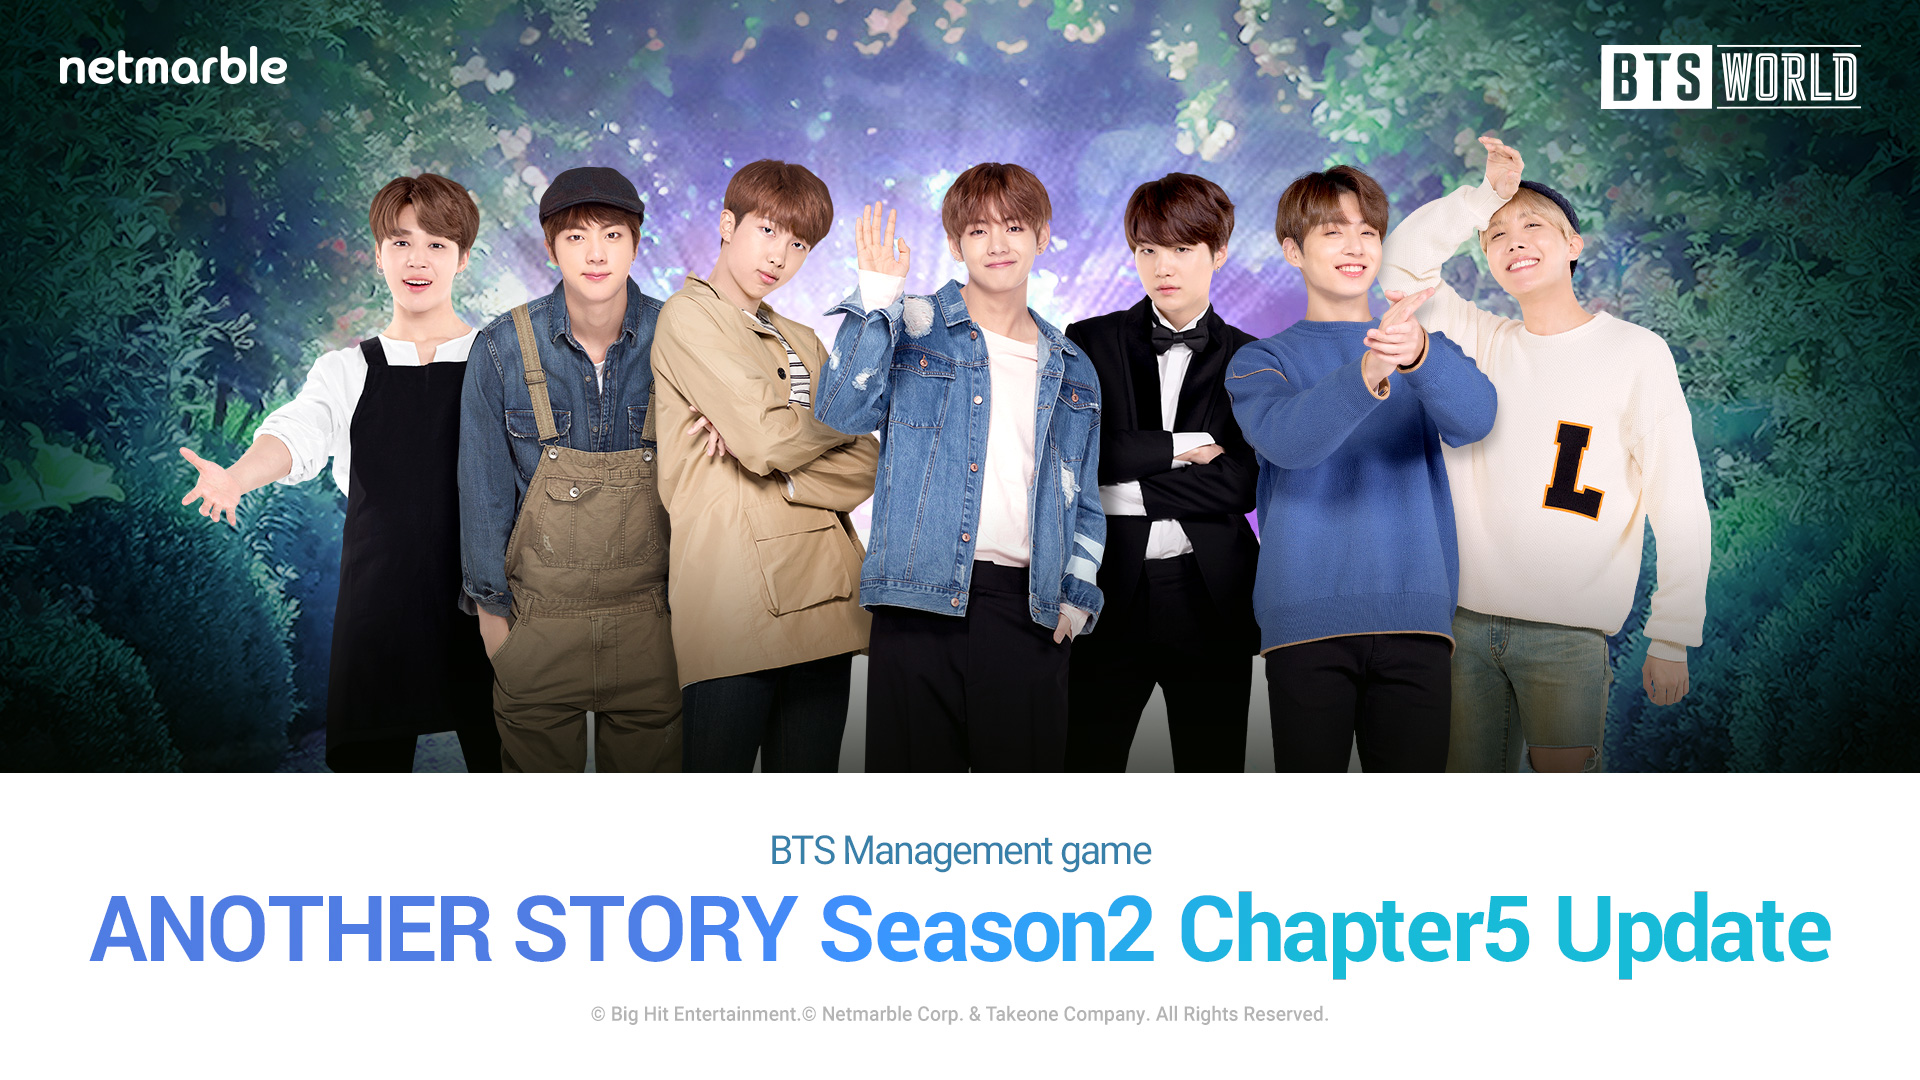 《BTS WORLD》12月更新 全新冒險劇情推出